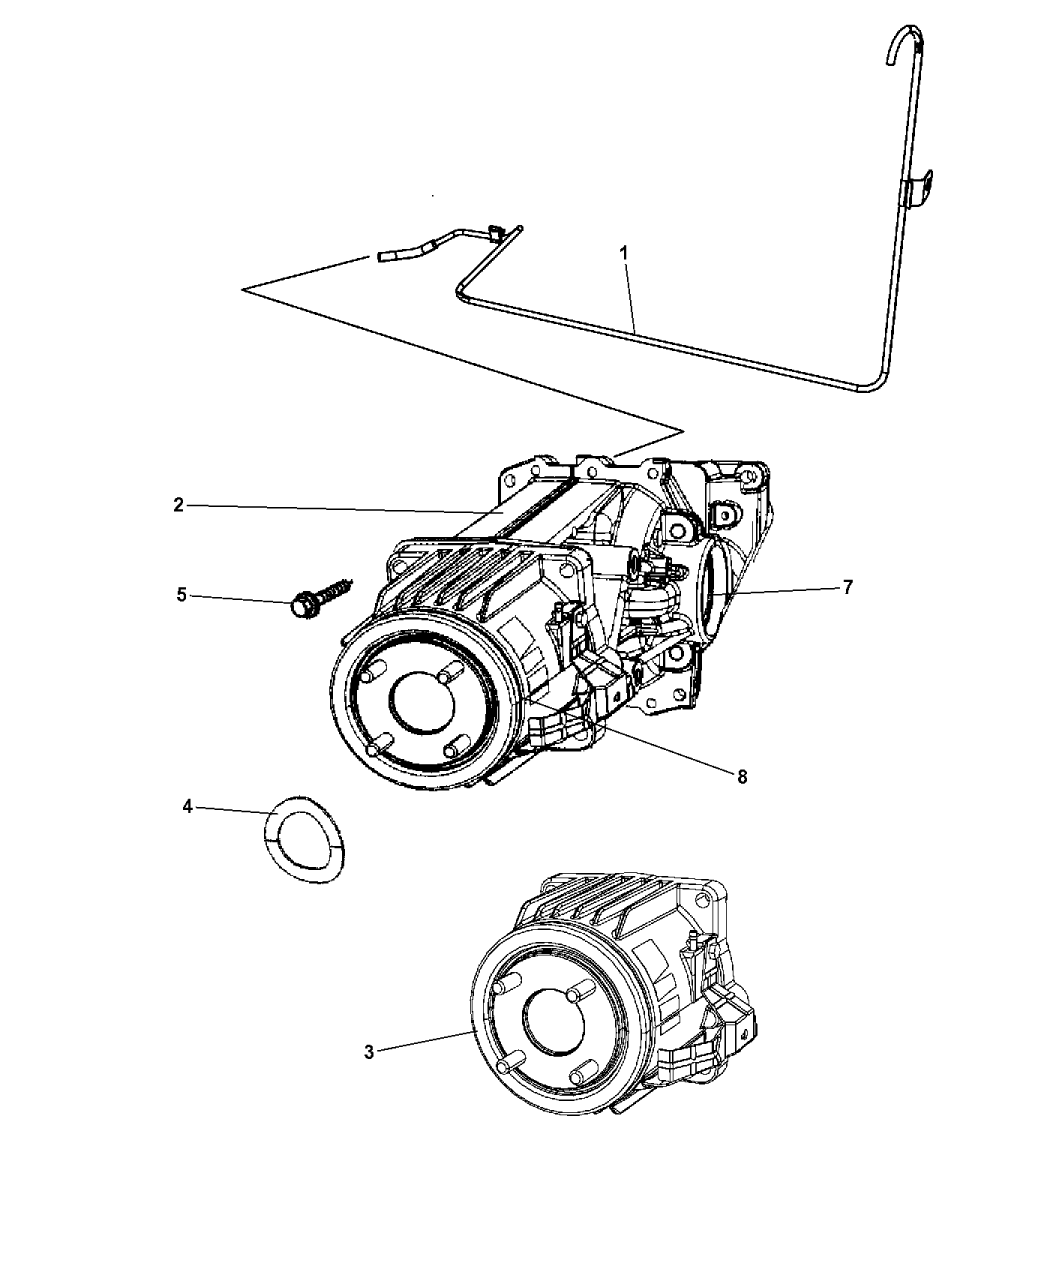 Tipm puter together with Jeep Ckp Cmp Asd additionally Resource T D   S L   R Ab C Ee Cd Ea C Fd Afb C F Eed F F B Dd Cc moreover Manual Reparacion Jeep  pass Patriot Limited Electrical  ponent Locator besides Maxresdefault. on jeep patriot fuel pump diagram